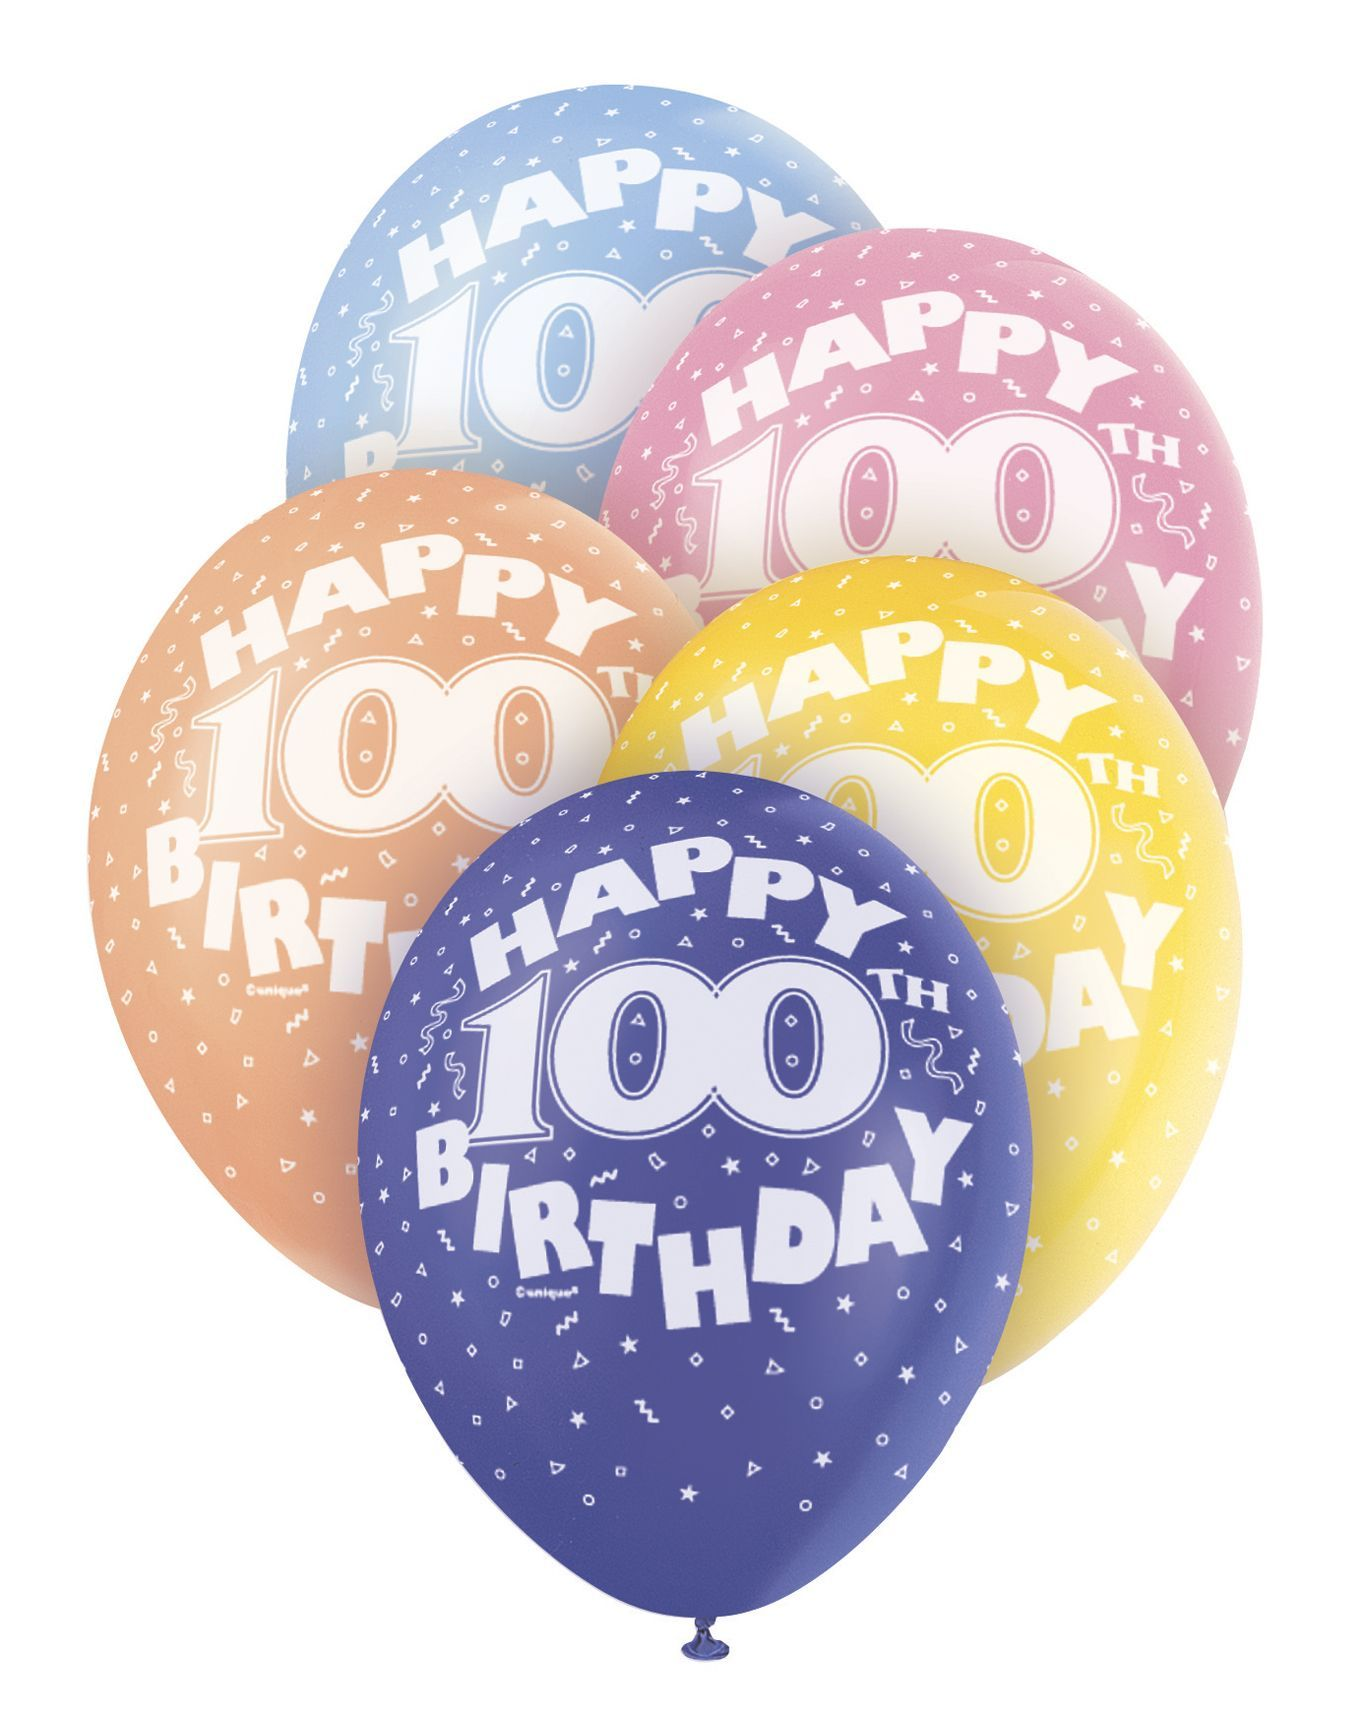 Pearlized Happy 100th Birthday Balloons 5 X 12 Colours May Vary